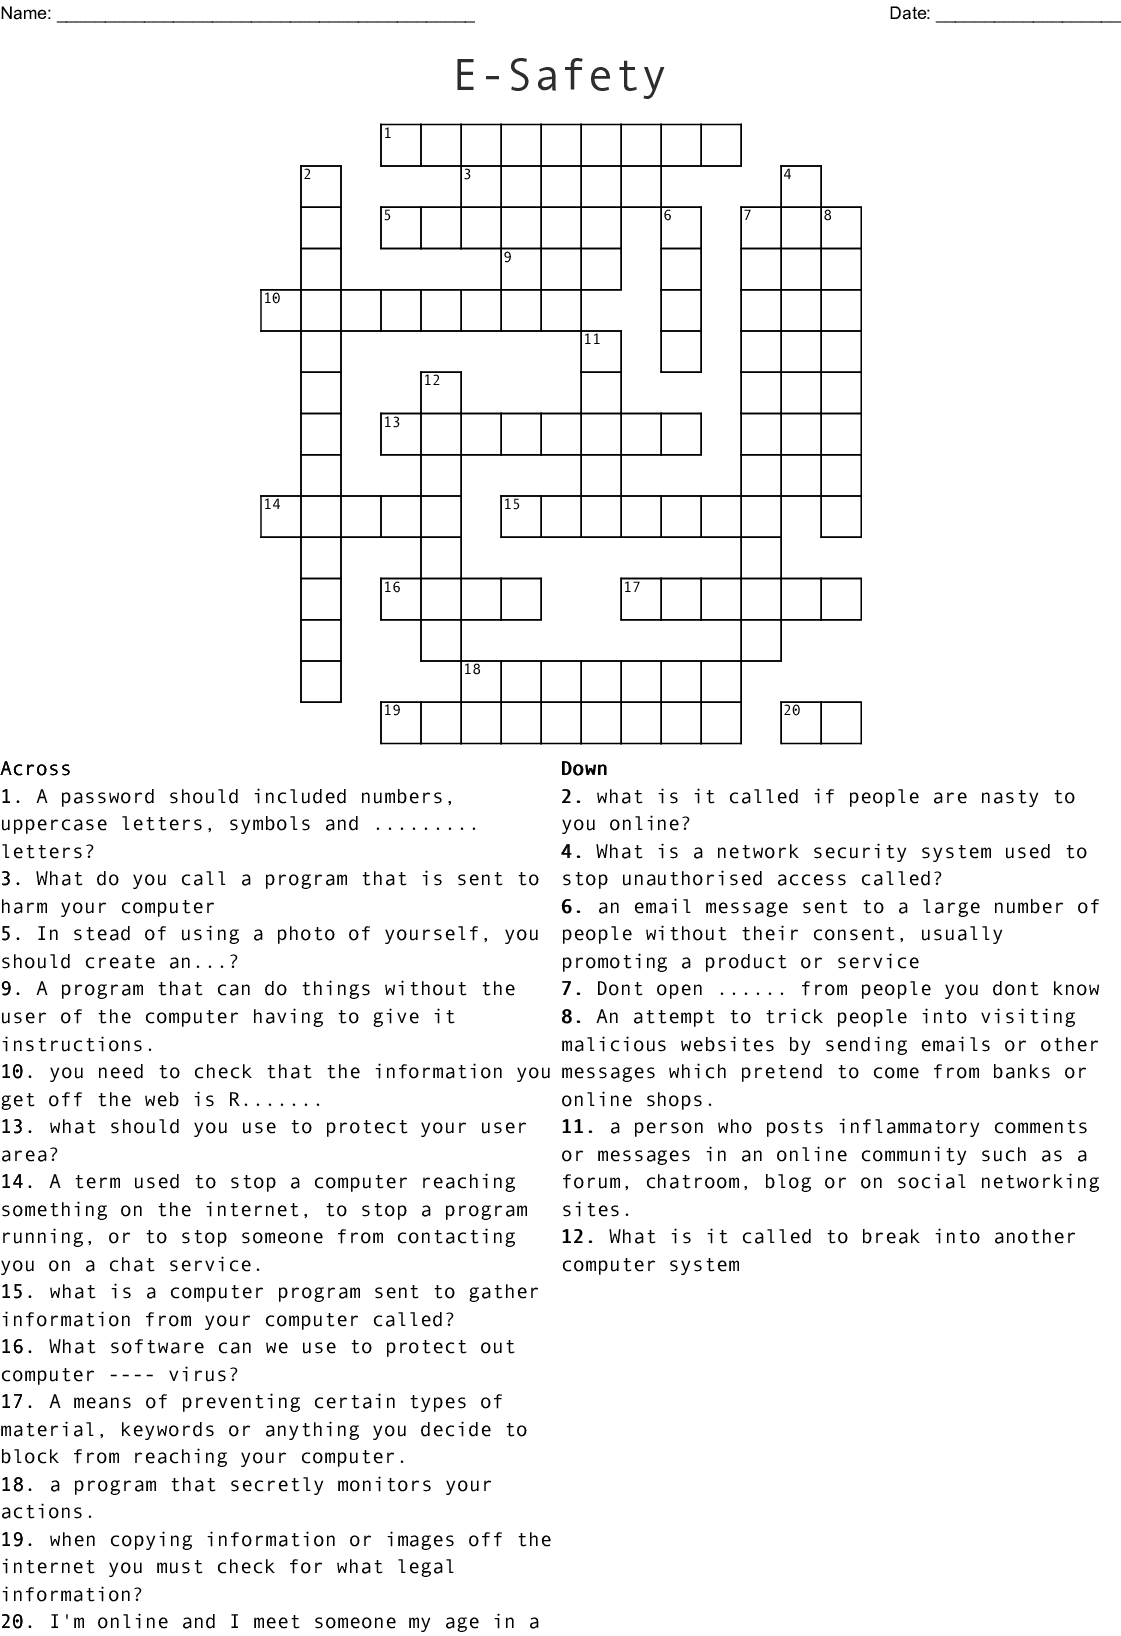 Opsec Is Not Puzzling Crossword